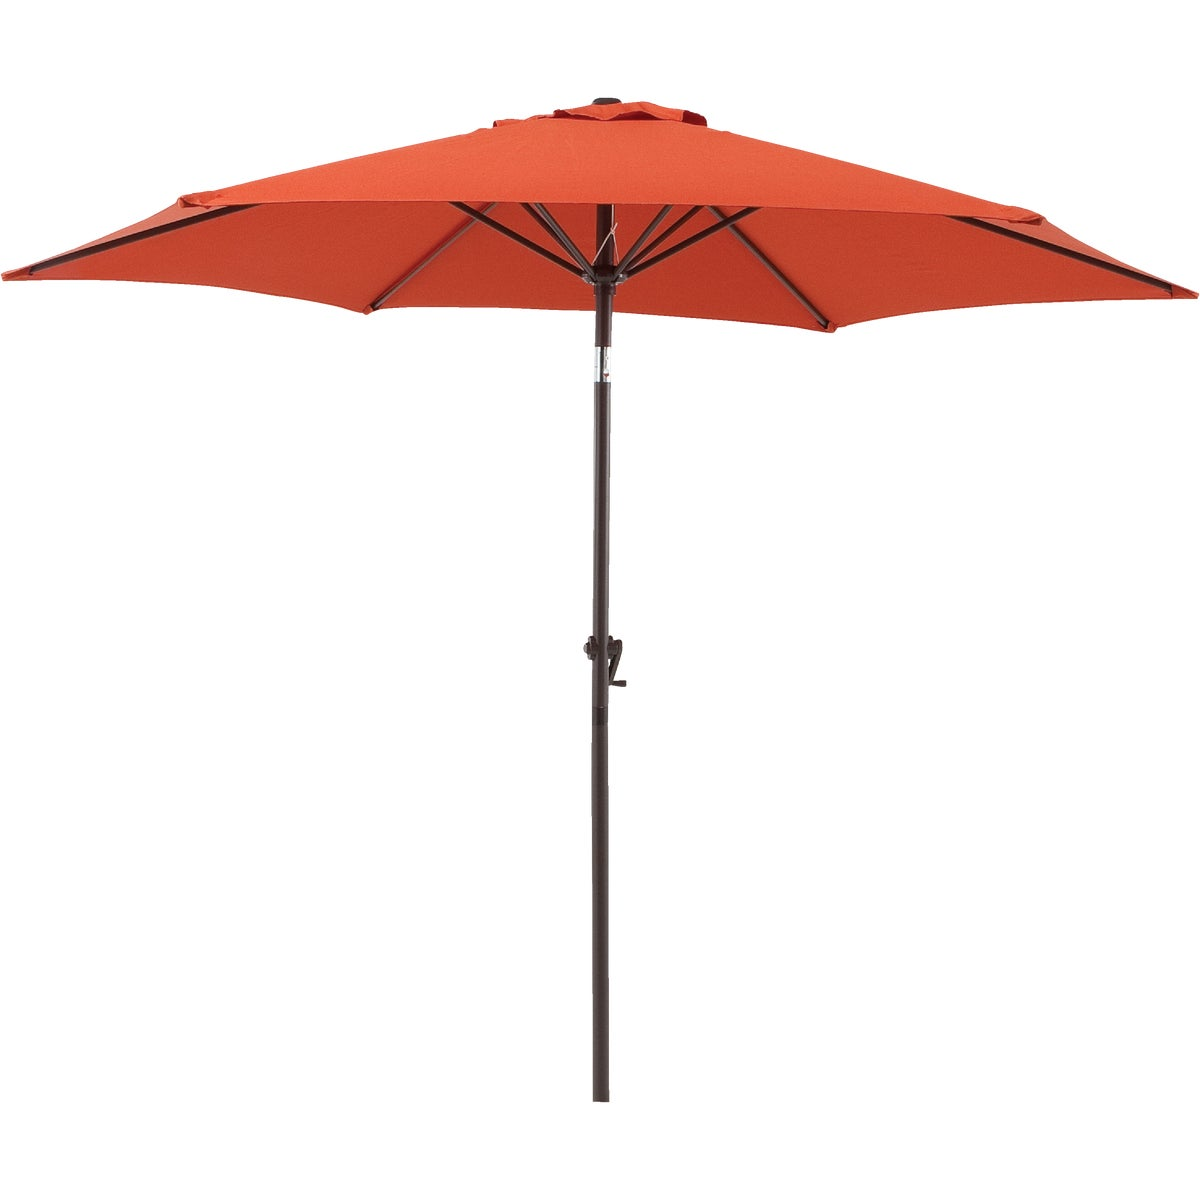 7.5' ORANGE UMBRELLA - TJAU-004A-230-ORG by Do it Best